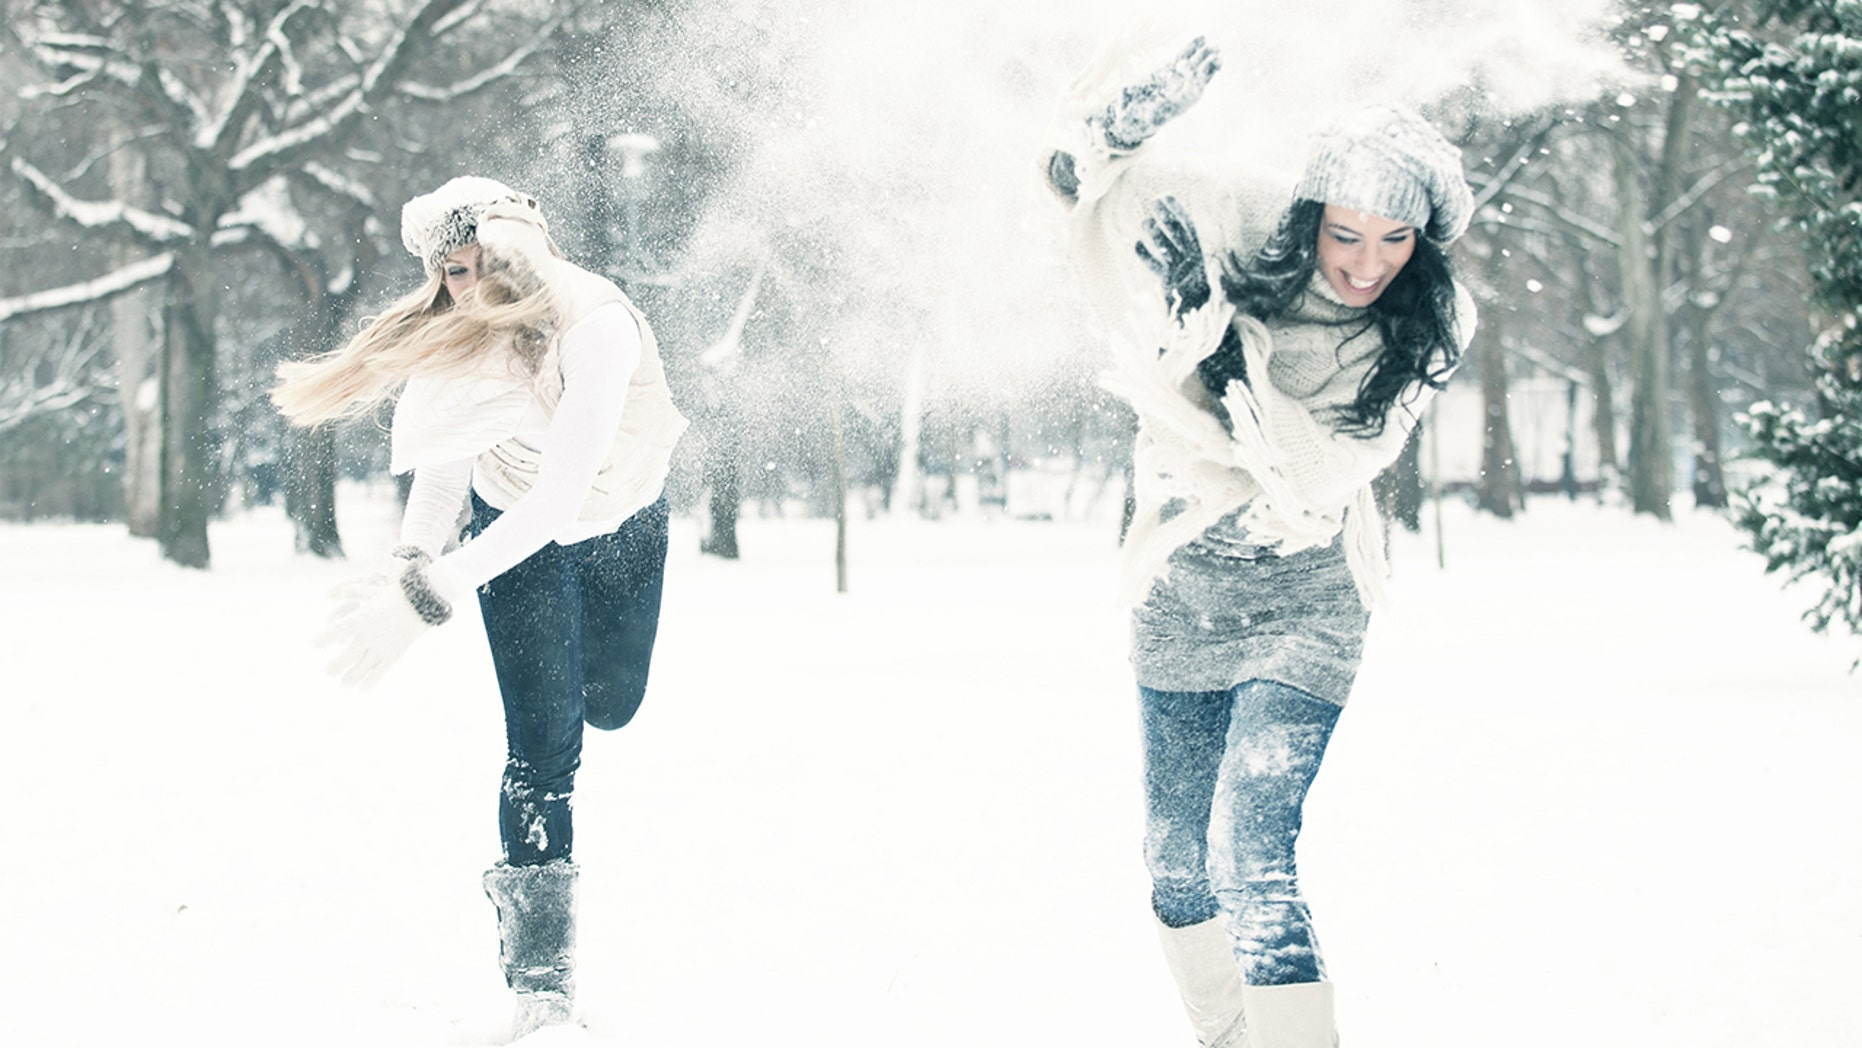 New Jersey's attempt at the world's largest snowball fight was thwarted due to too much snow